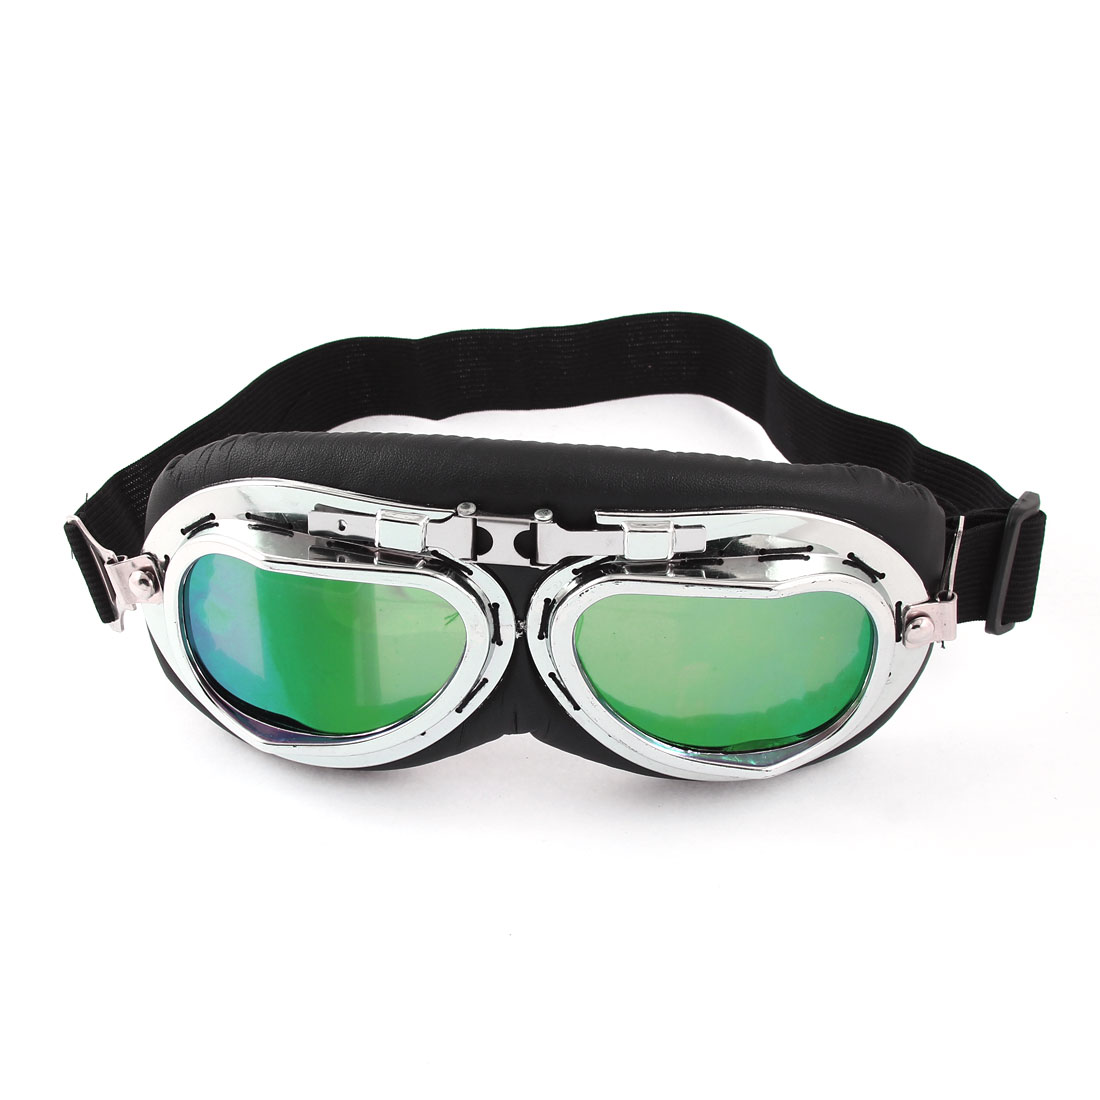 Unisex Green Lens Black Full Frame Motorcycle Protective Goggles Glasses